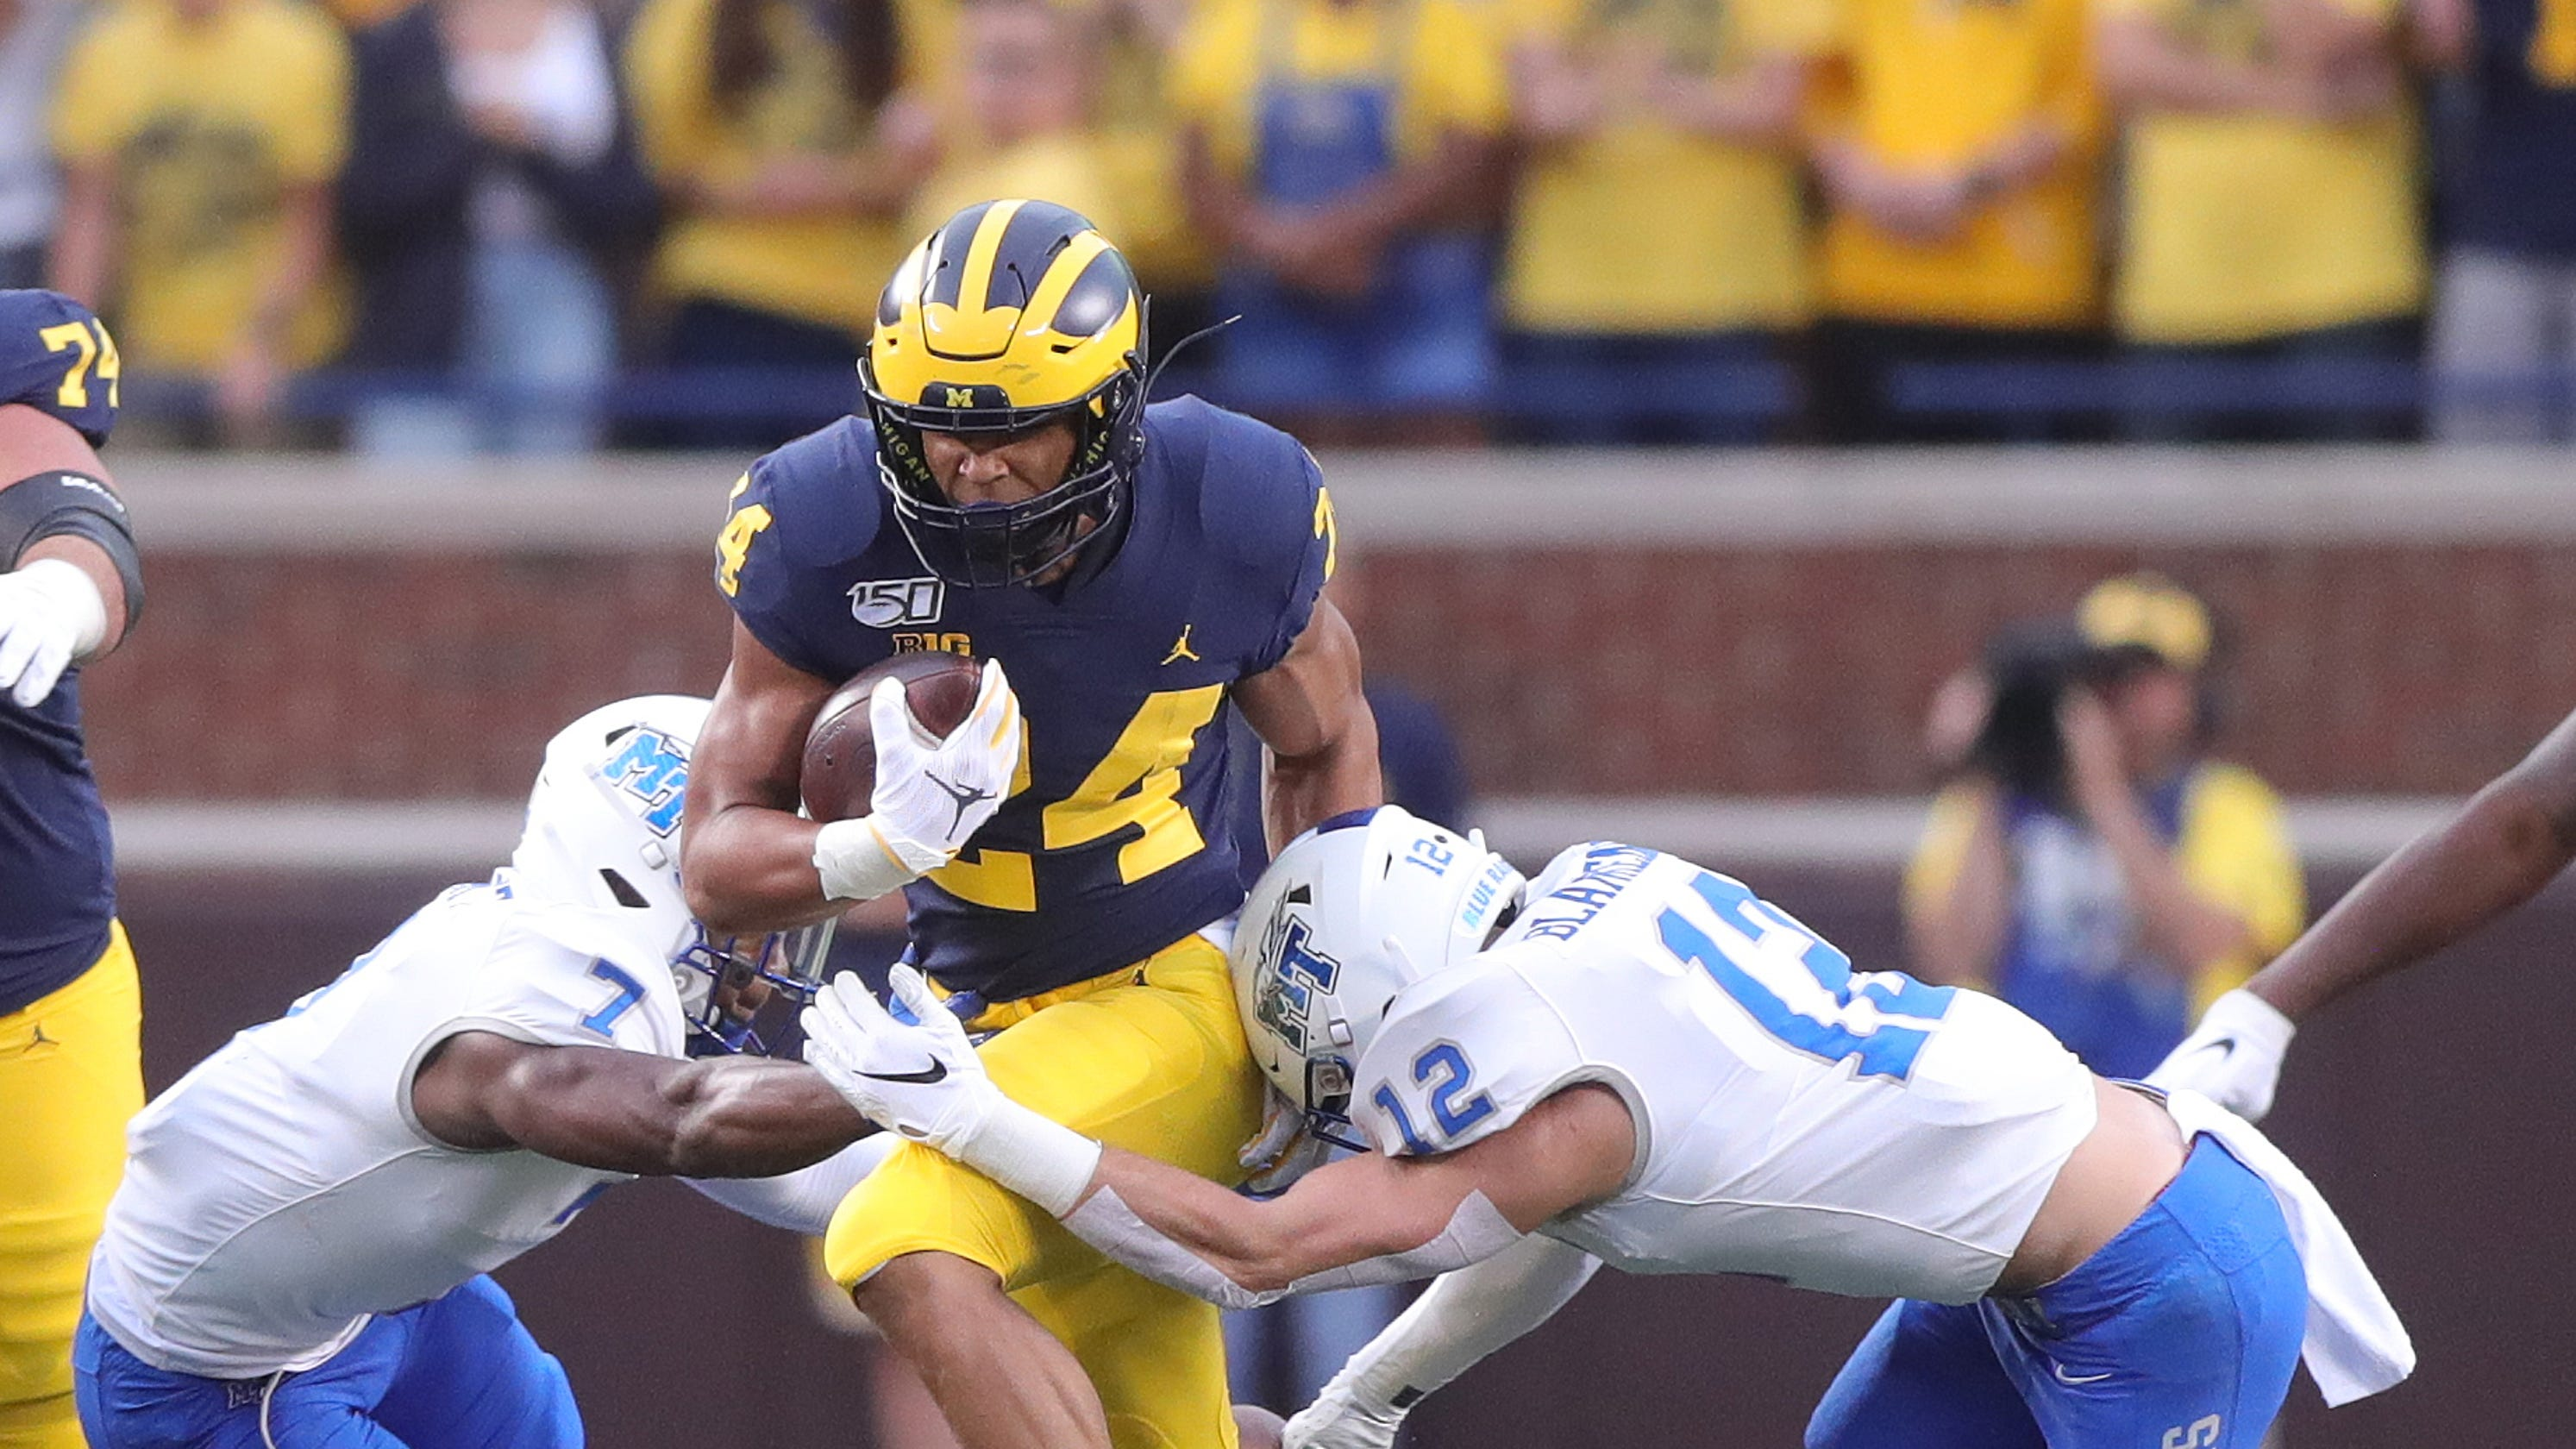 Michigan's Zach Charbonnet was groomed to be college star ...